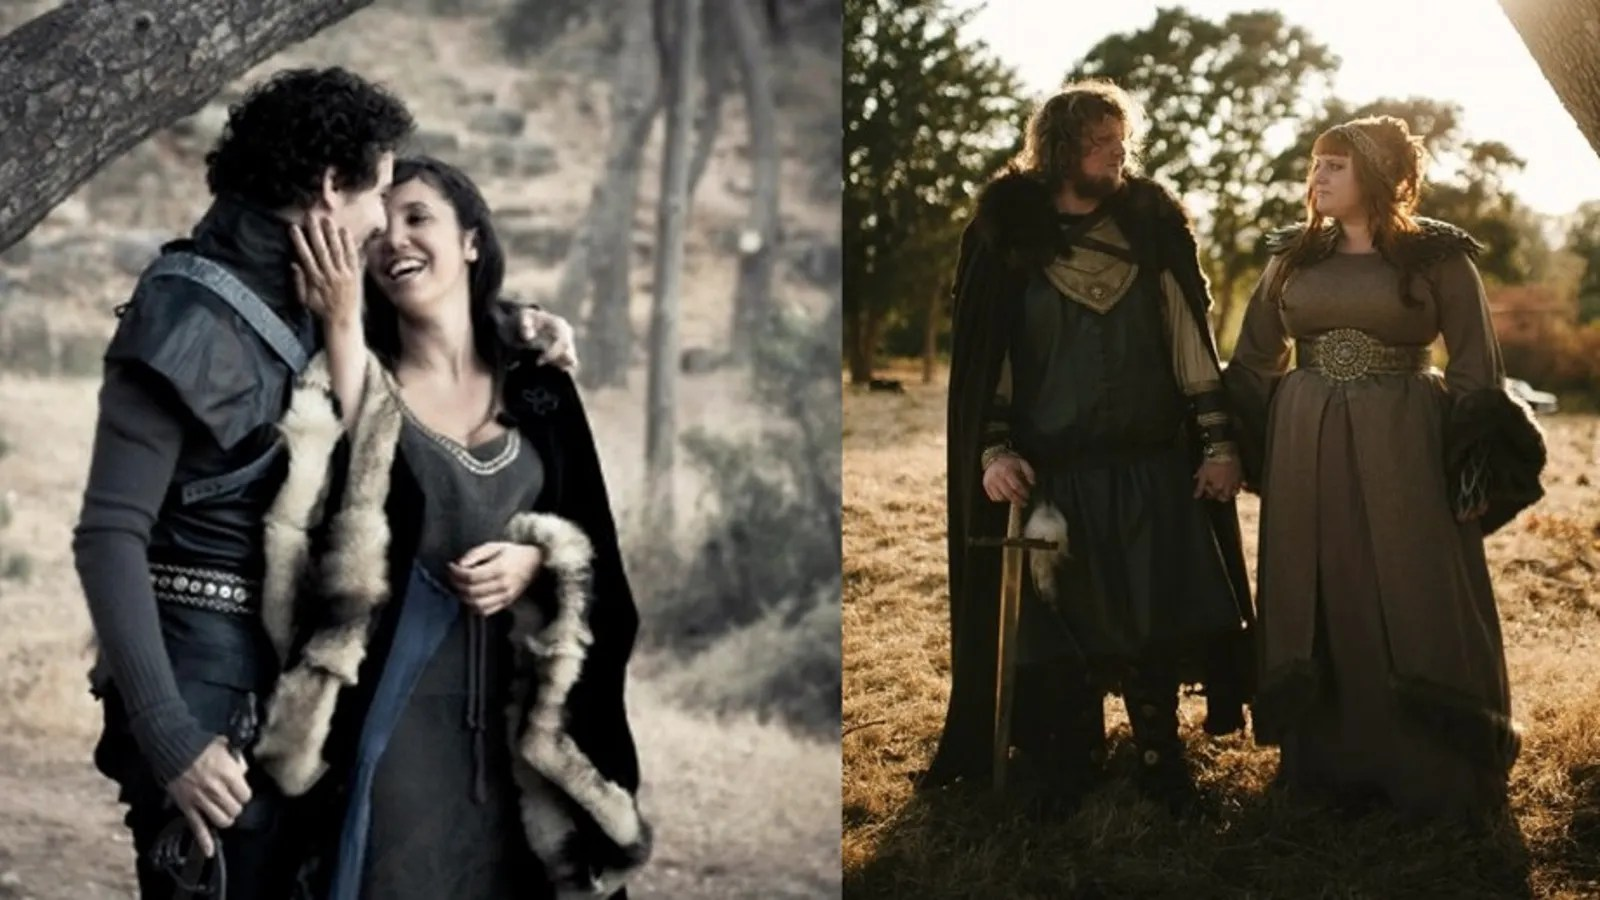 Game Of Thrones Engagement Shoots Announce: The Wedding Is